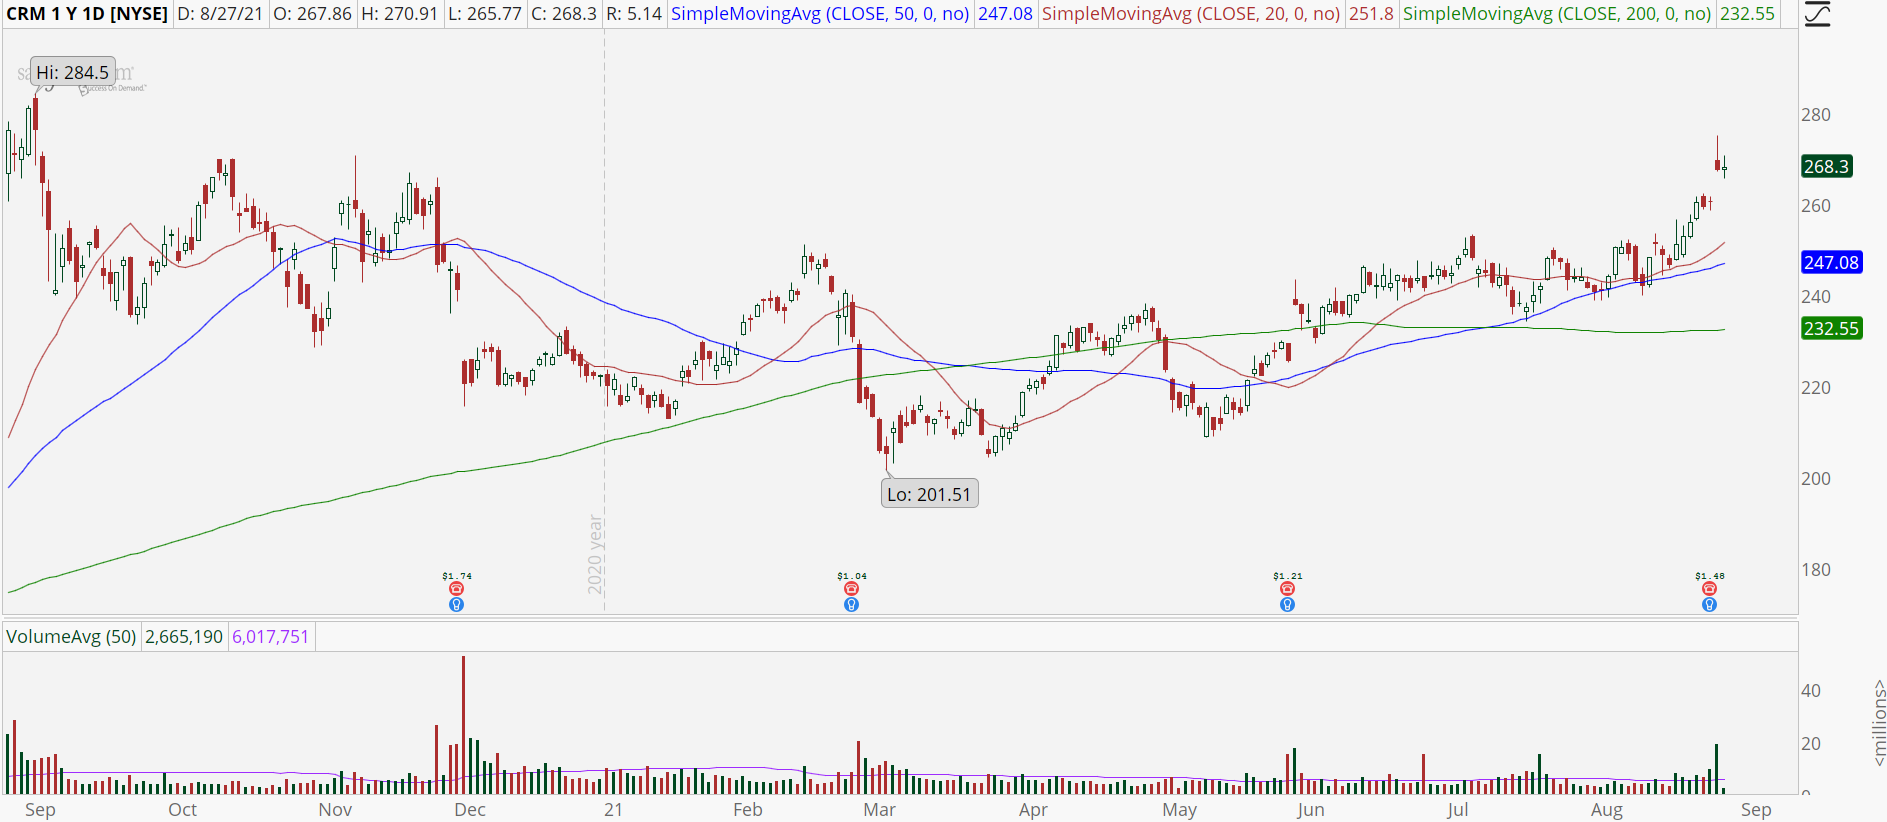 Salesforce.com (CRM) stock chart with earnings gap.